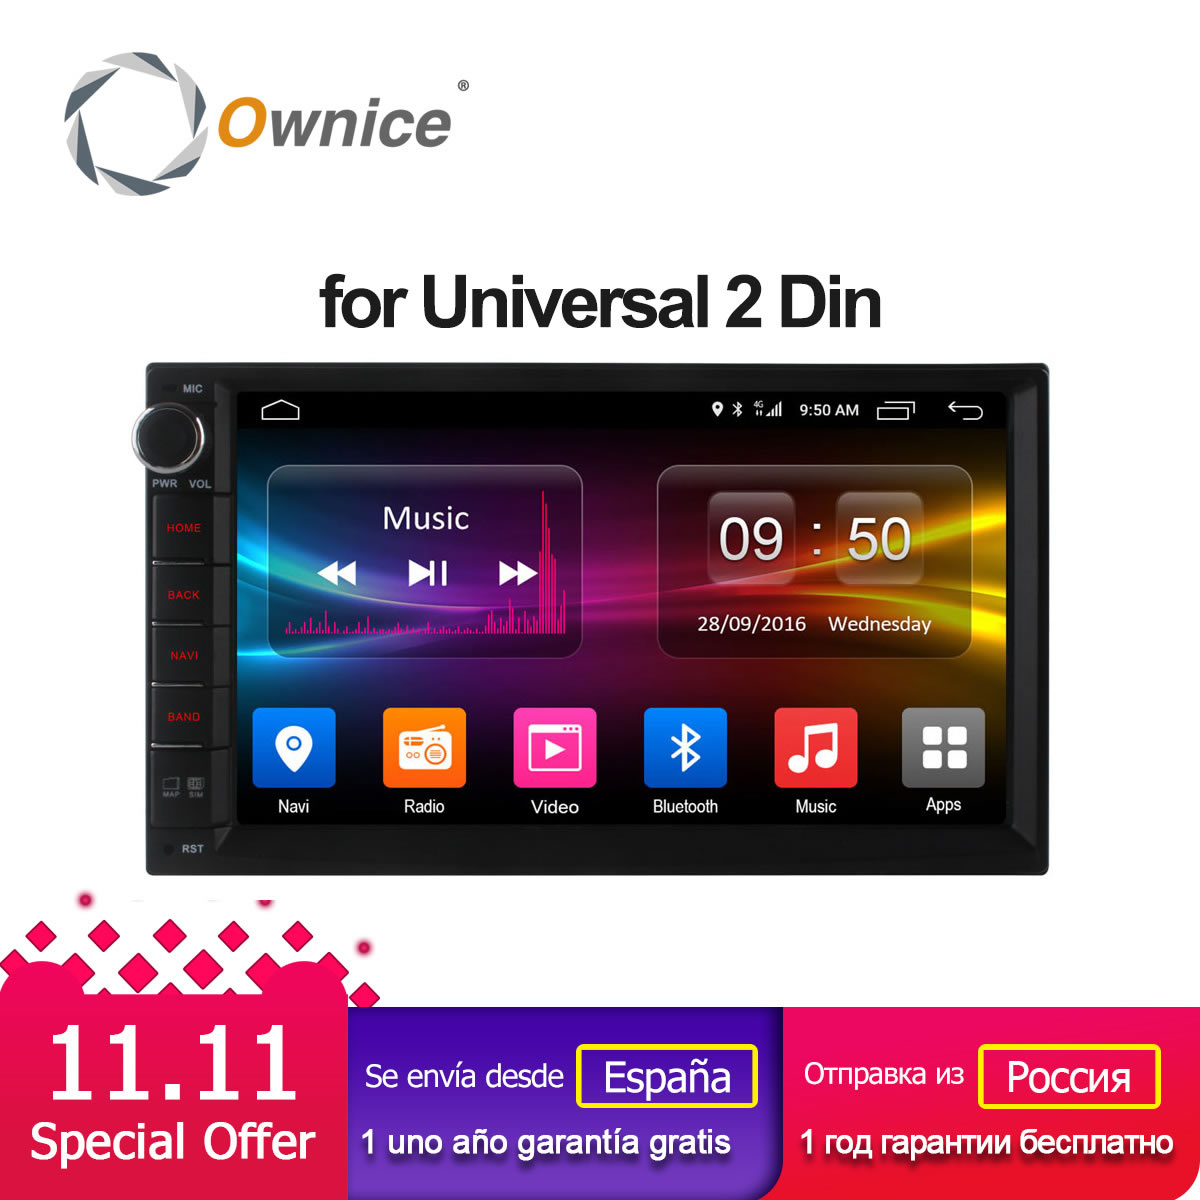 Ownice C500 Android 6.0 Octa Core 2 din Universal For Nissan GPS Navi BT Radio Stereo Audio Player(No DVD) Build-in 4G Moudule ownice c500 7 1024 600 android 6 0 quad core 2 din universal for nissan gps navi bt radio stereo audio player support 4g no dvd